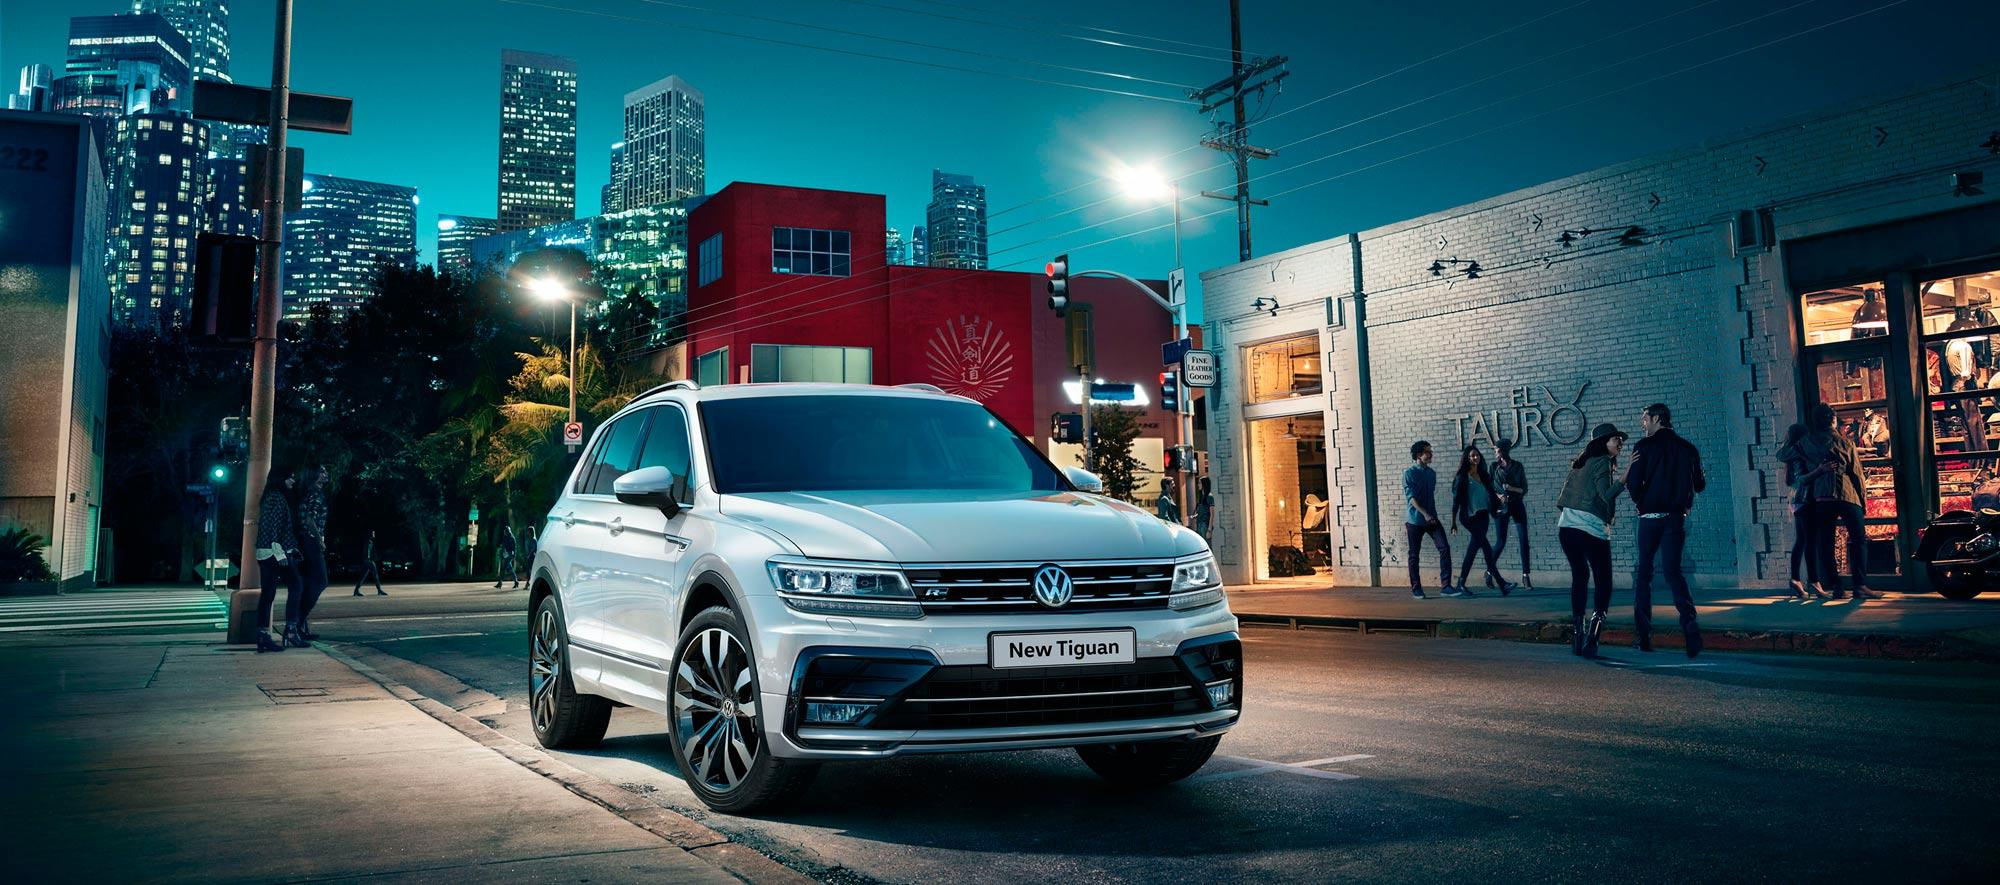 The New Tiguan